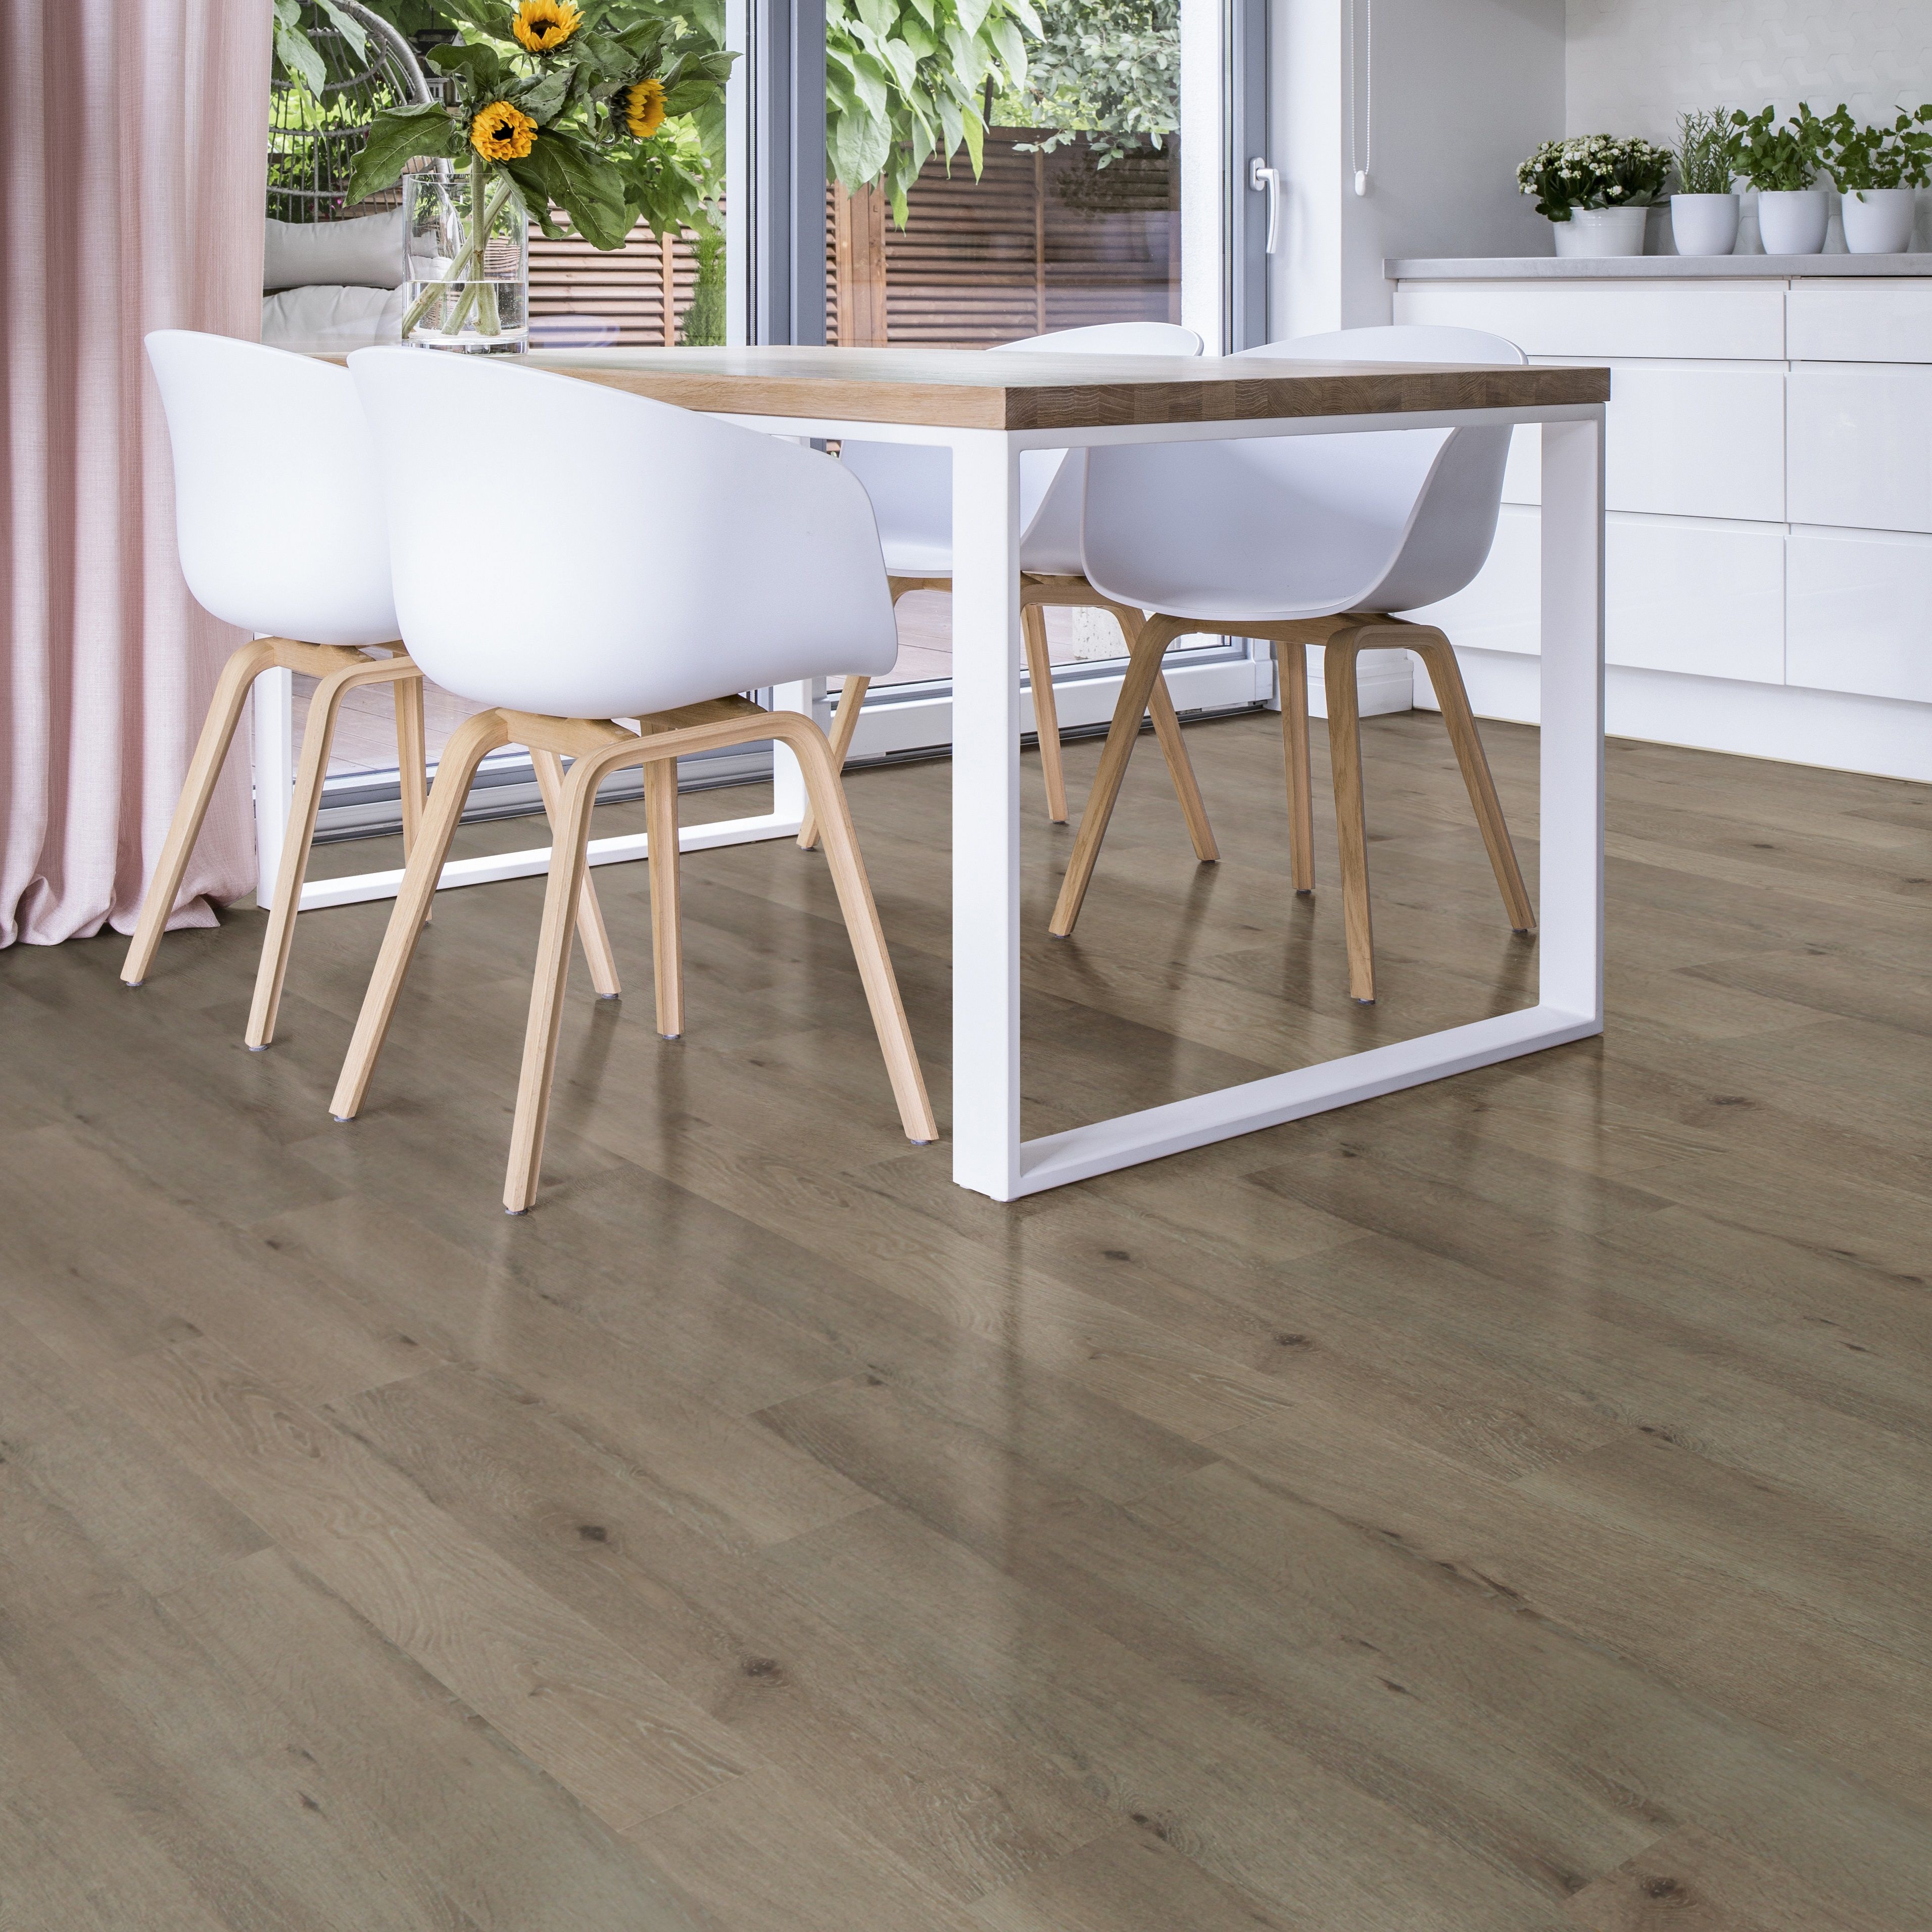 Colours Dolce Grey Laminate flooring 1.19 m² Pack | Departments | DIY at B&Q